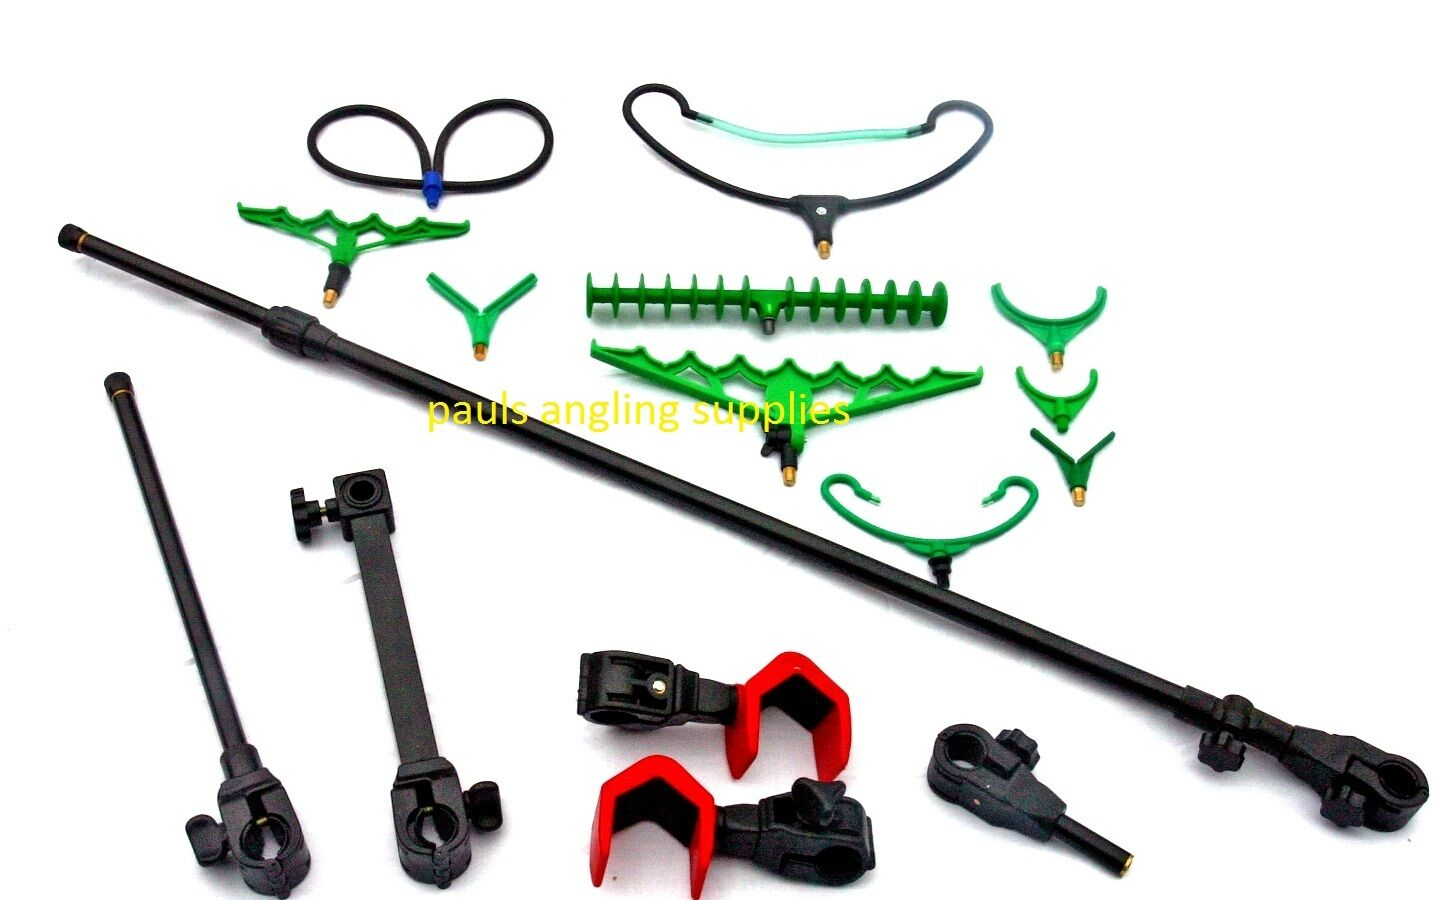 universal fishing chair attachments ergonomic melbourne arm pole hooks rest and accessory